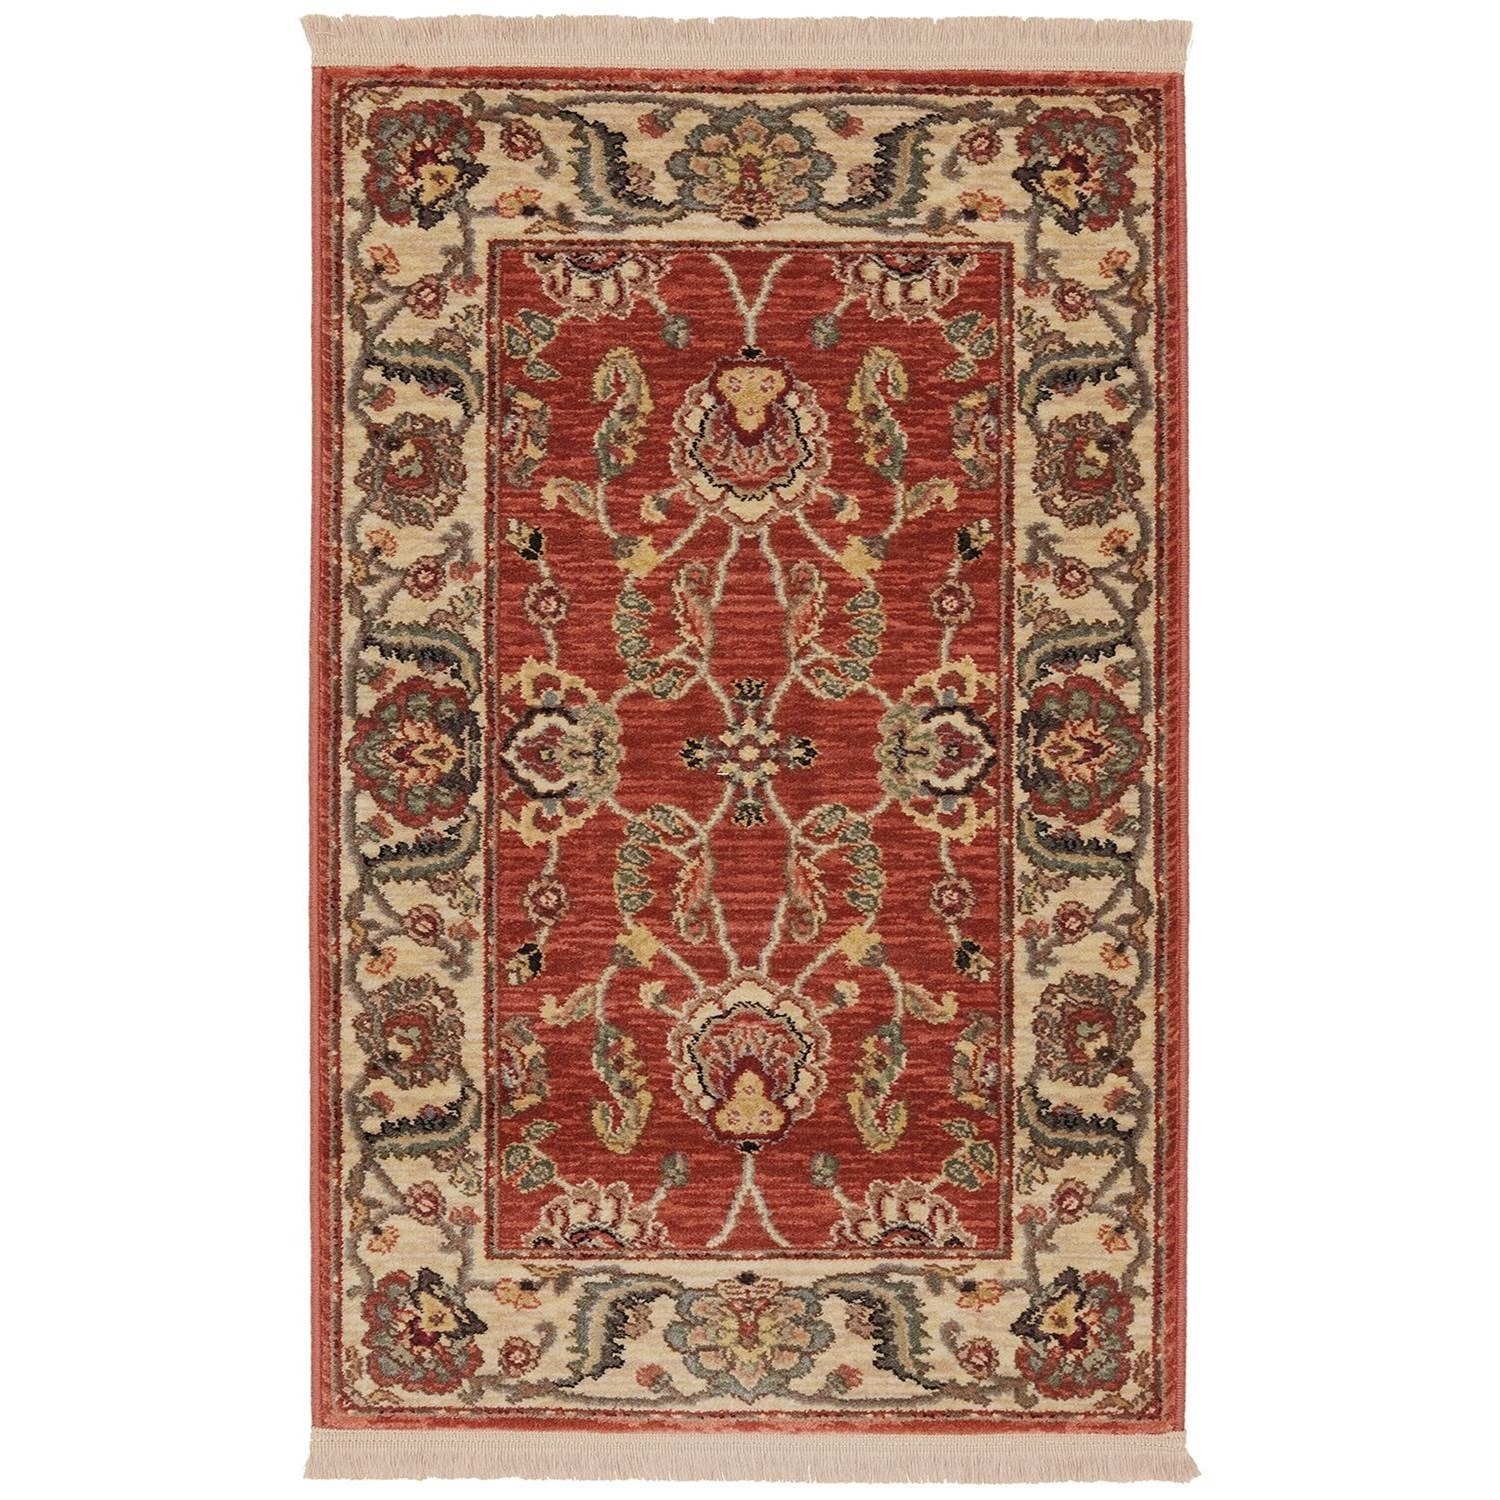 11'5x16' Agra Red Rug